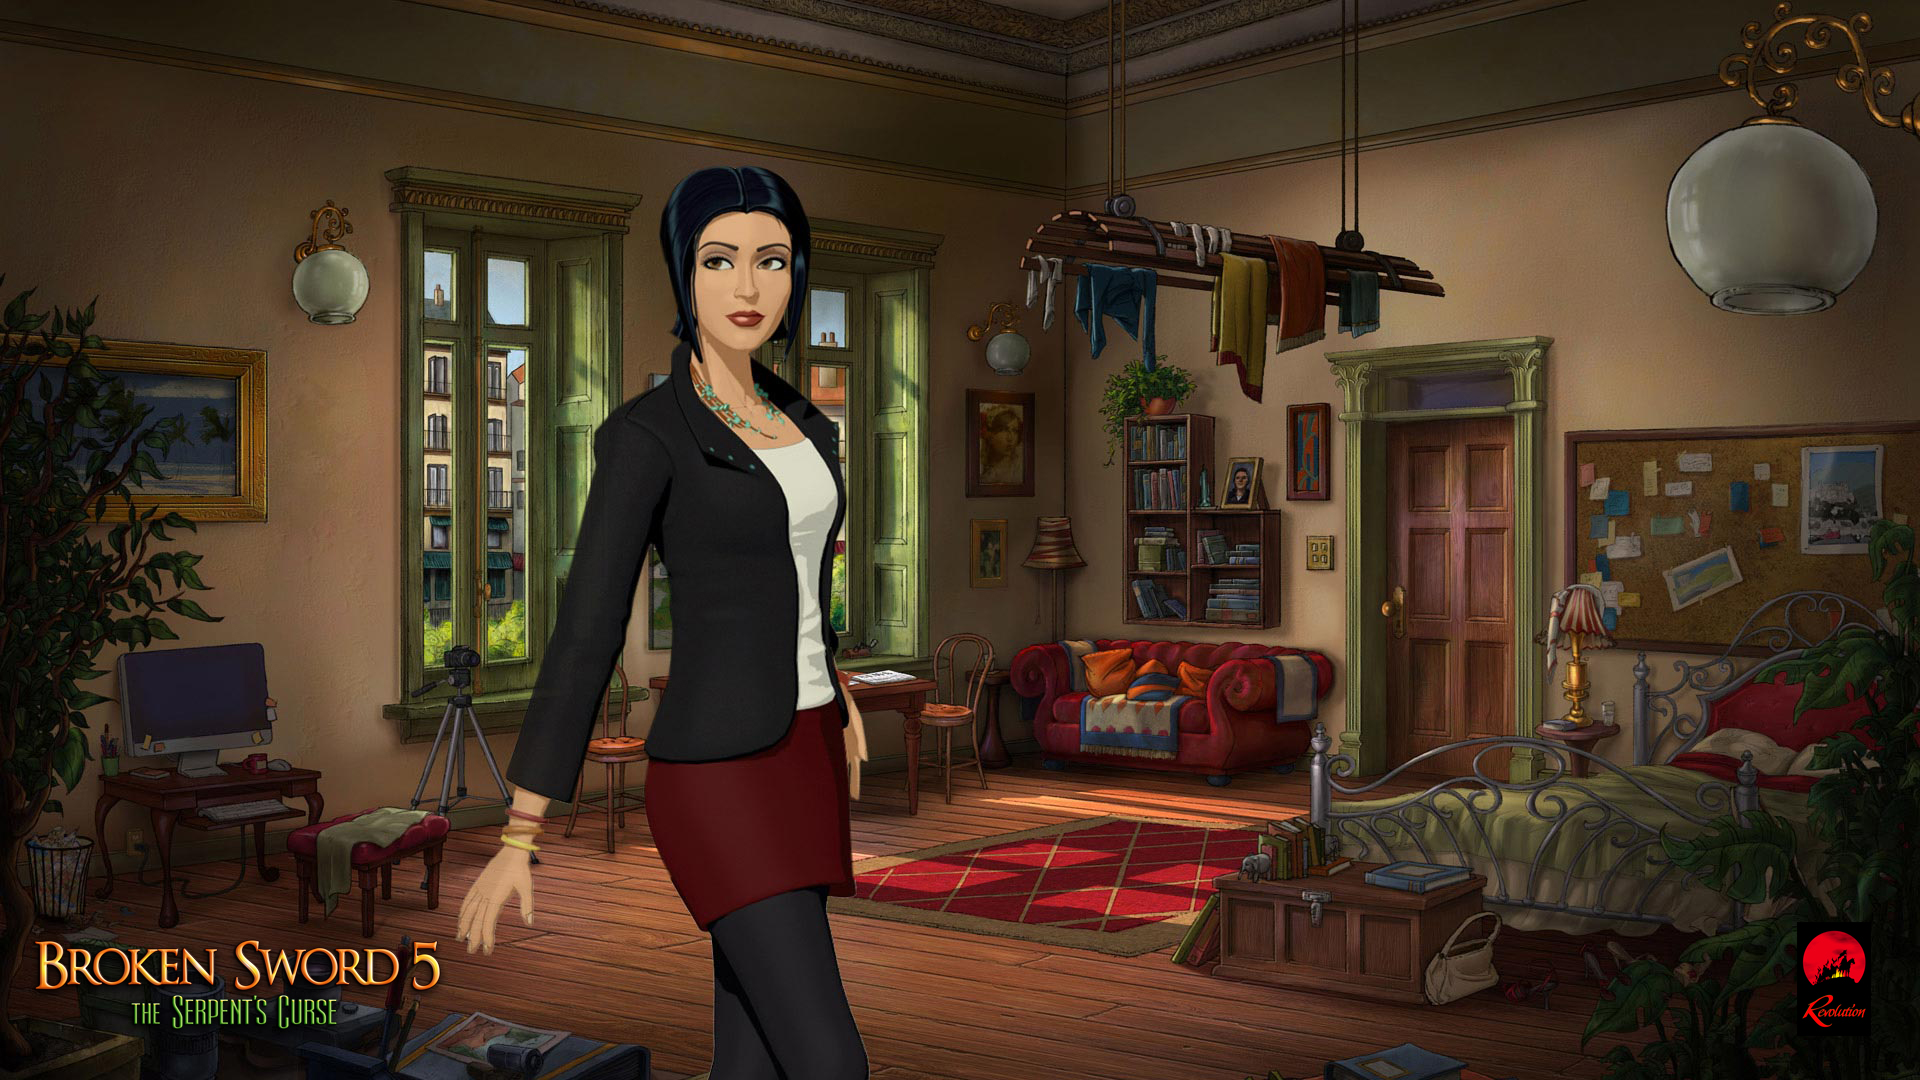 Broken Sword 5 The Serpent's Curse Image 2